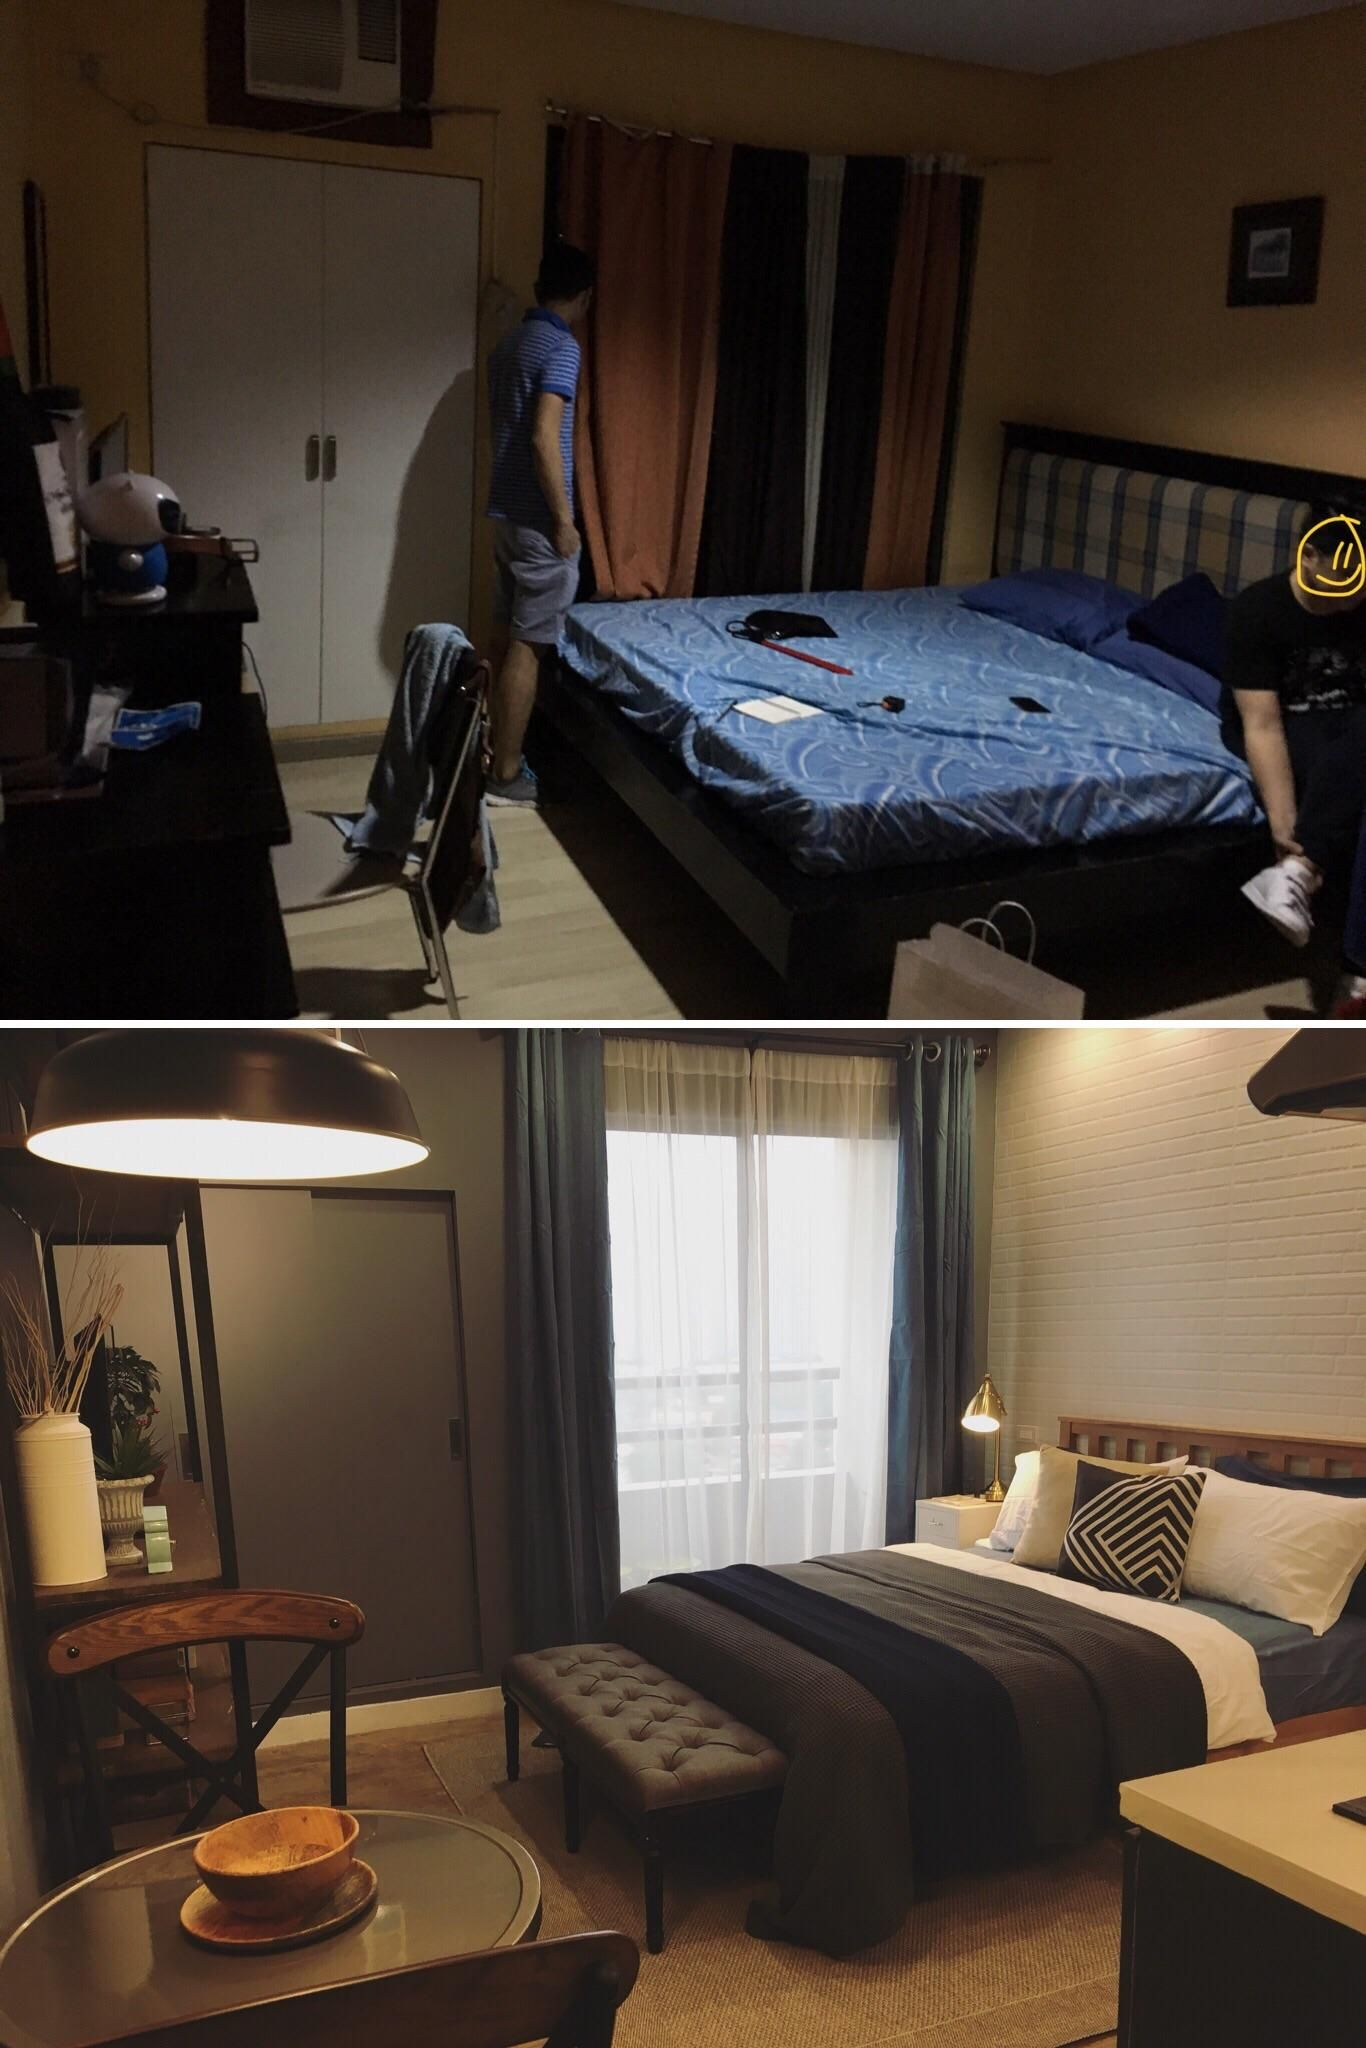 A Guy Room in 2020 Apartment makeover, Home decor